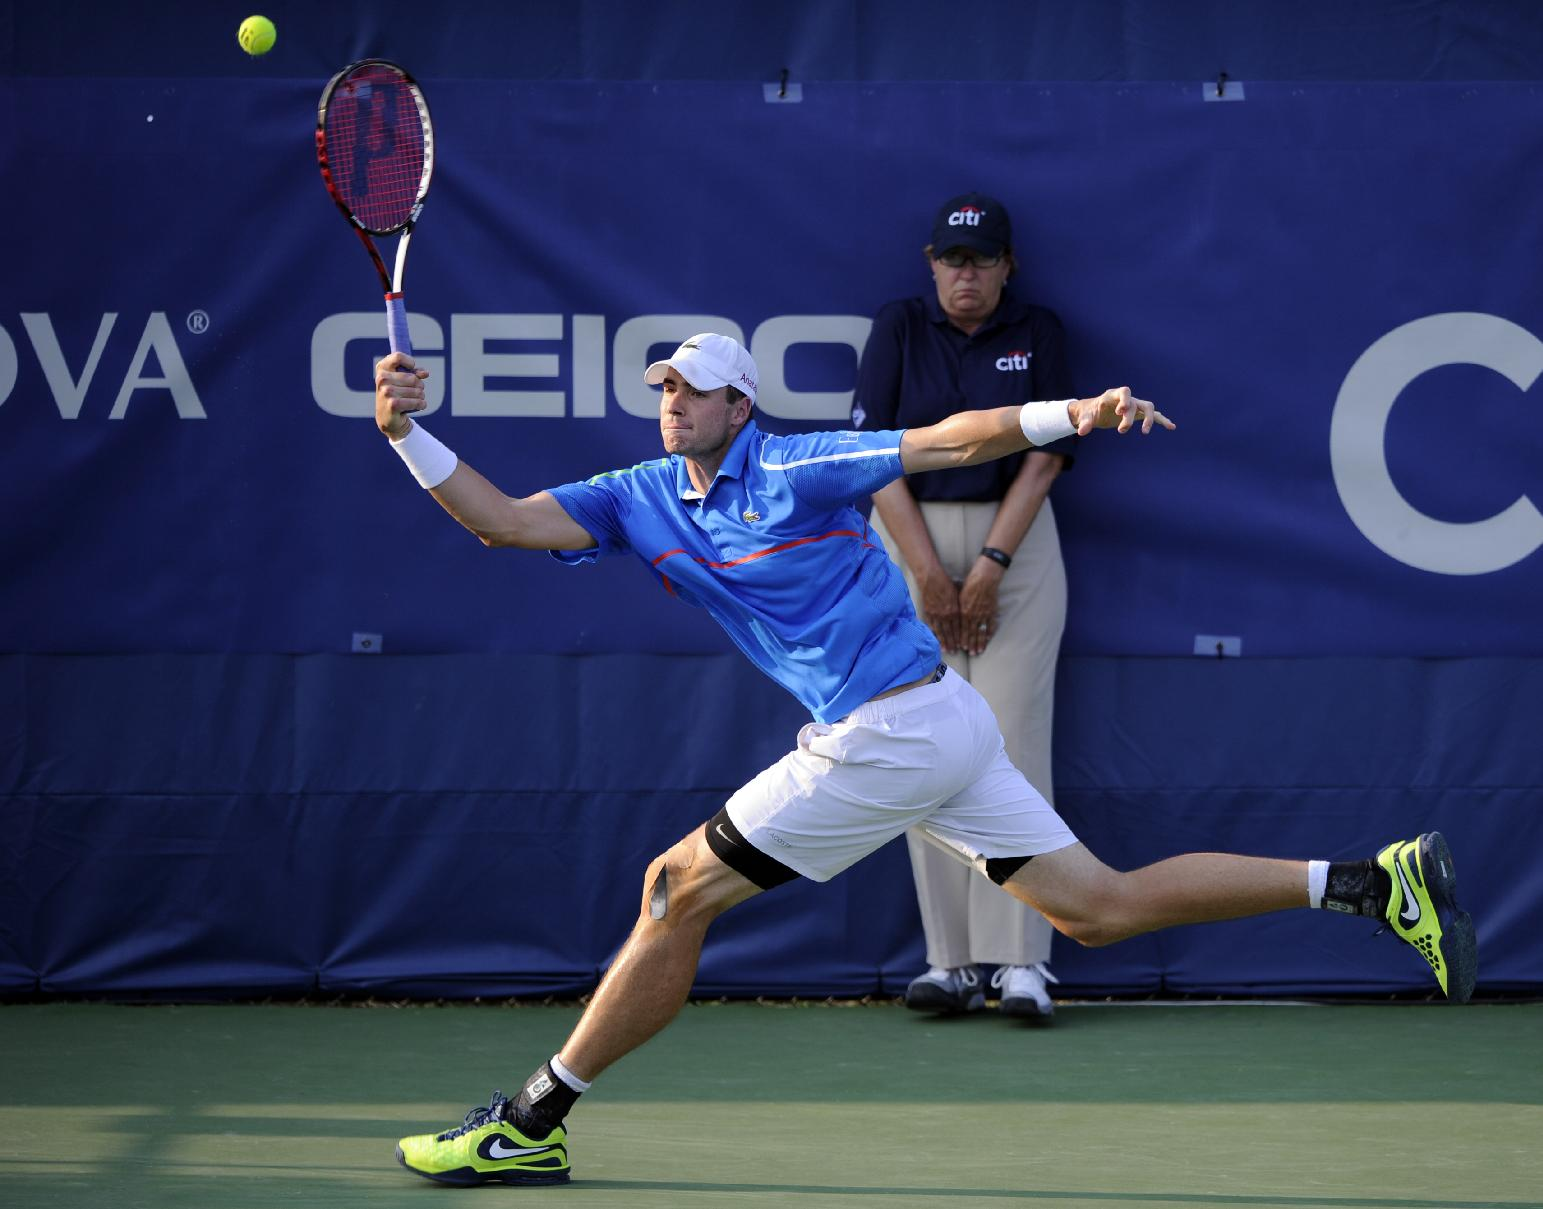 Disappointed by Citi Open Snub, Isner Speaks Out